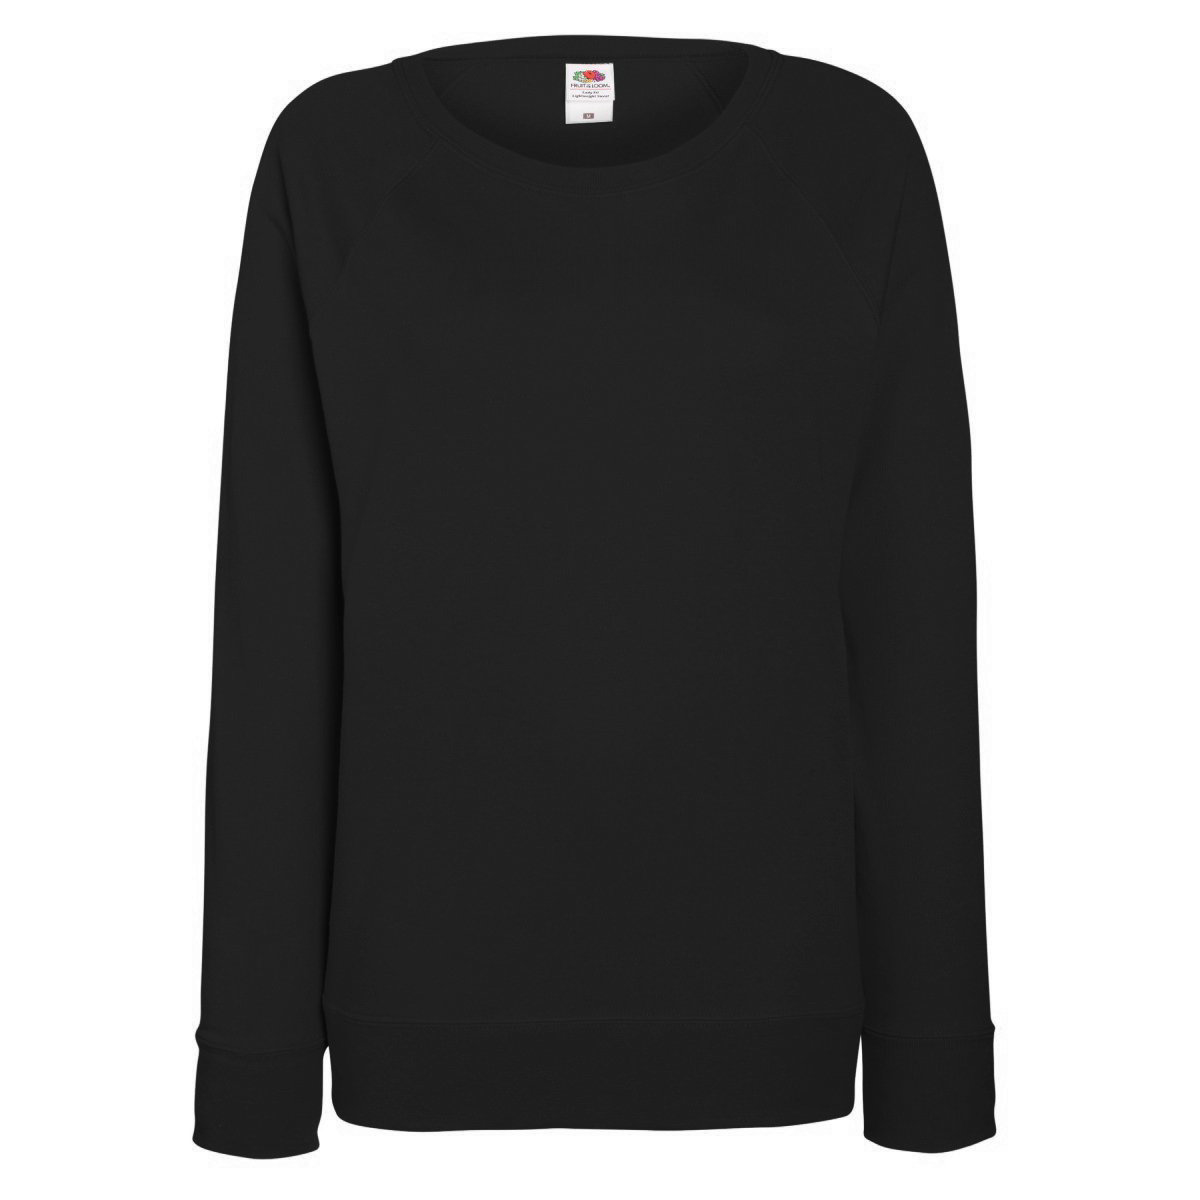 Fruit of the Loom Ladies Sweatshirt - Black